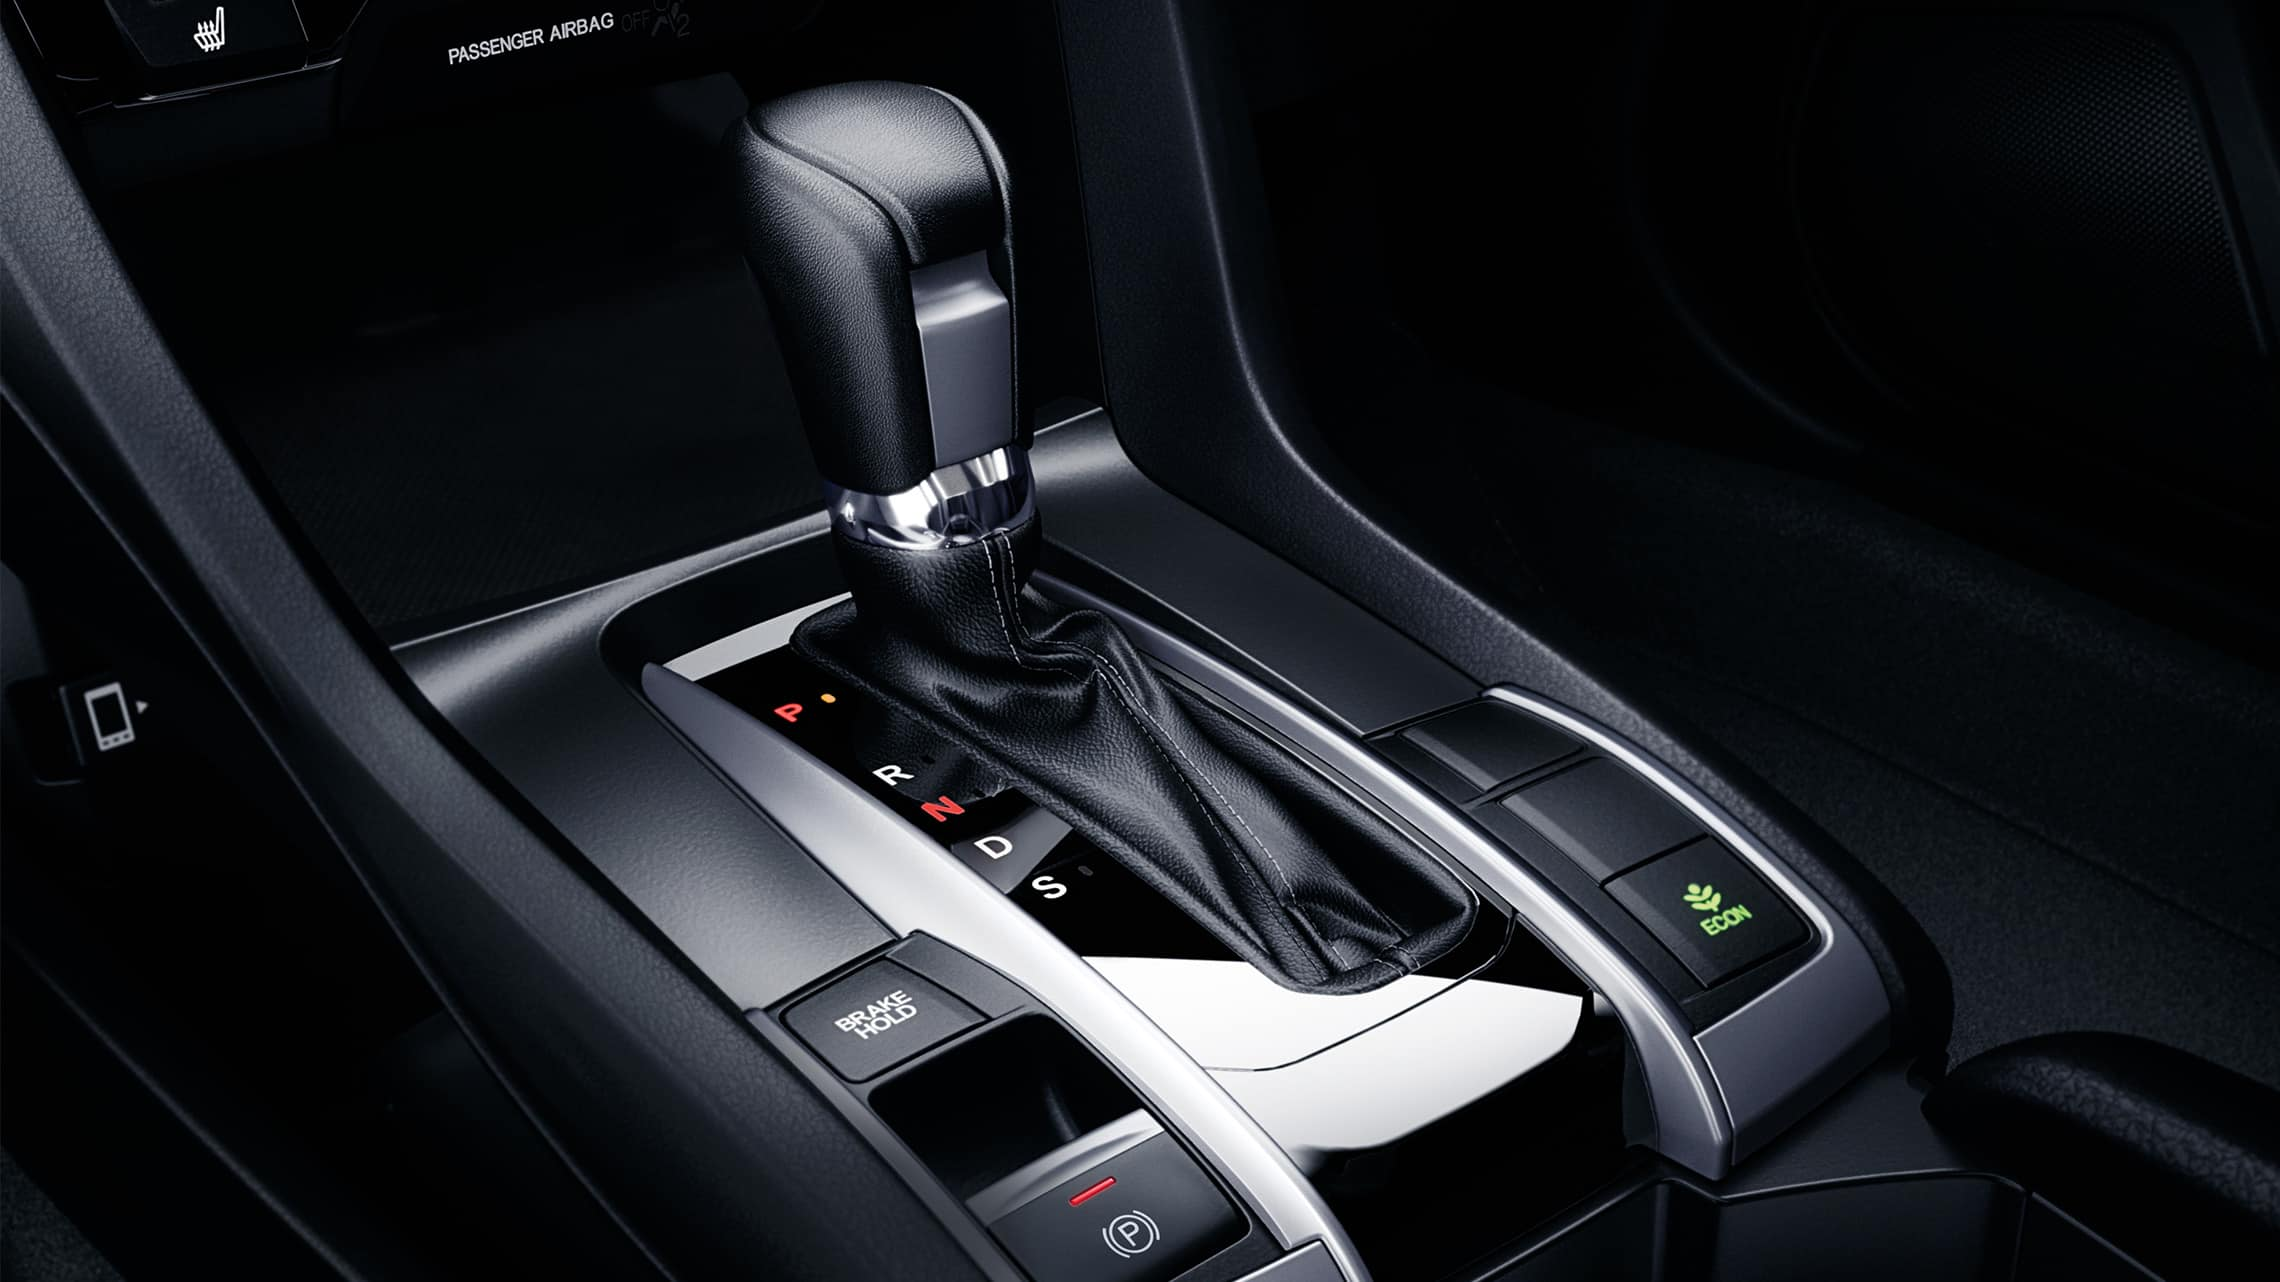 CVT shifter detail in the 2020 Honda Civic Touring Coupe.